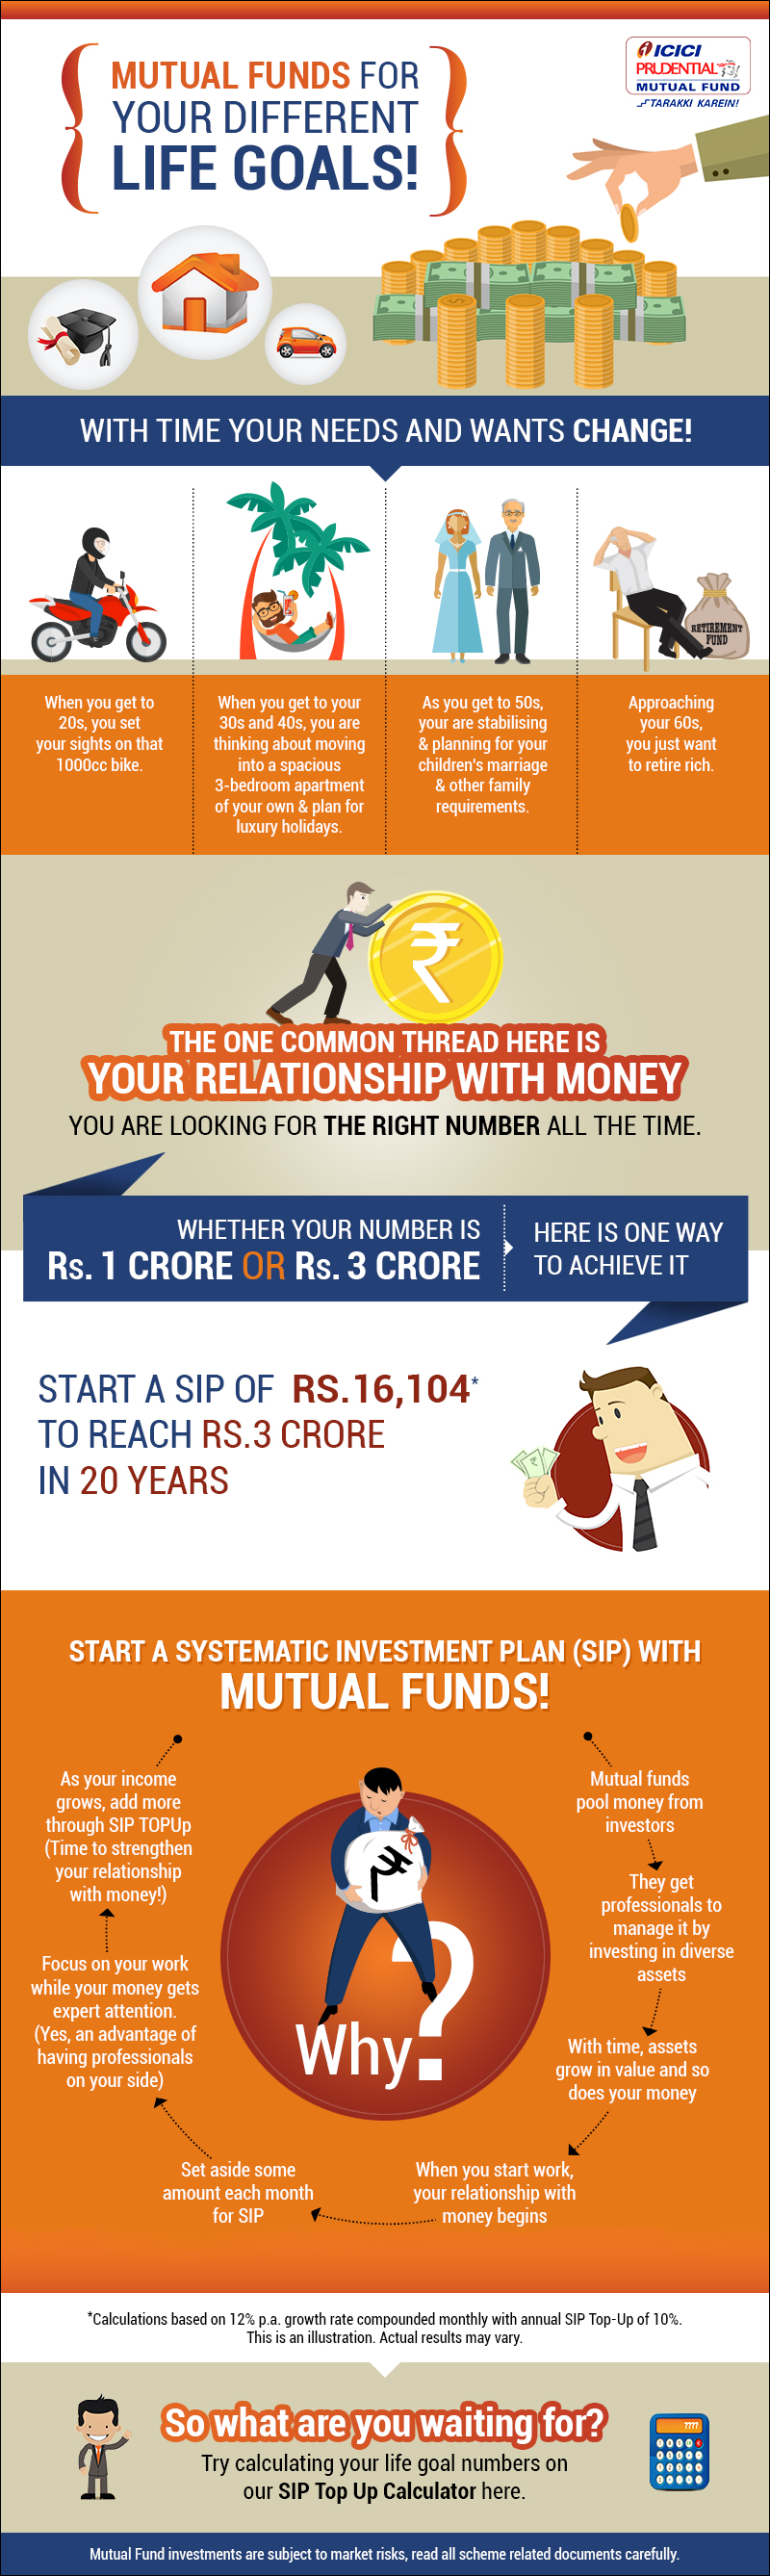 ICICI_Infographic_Final-2